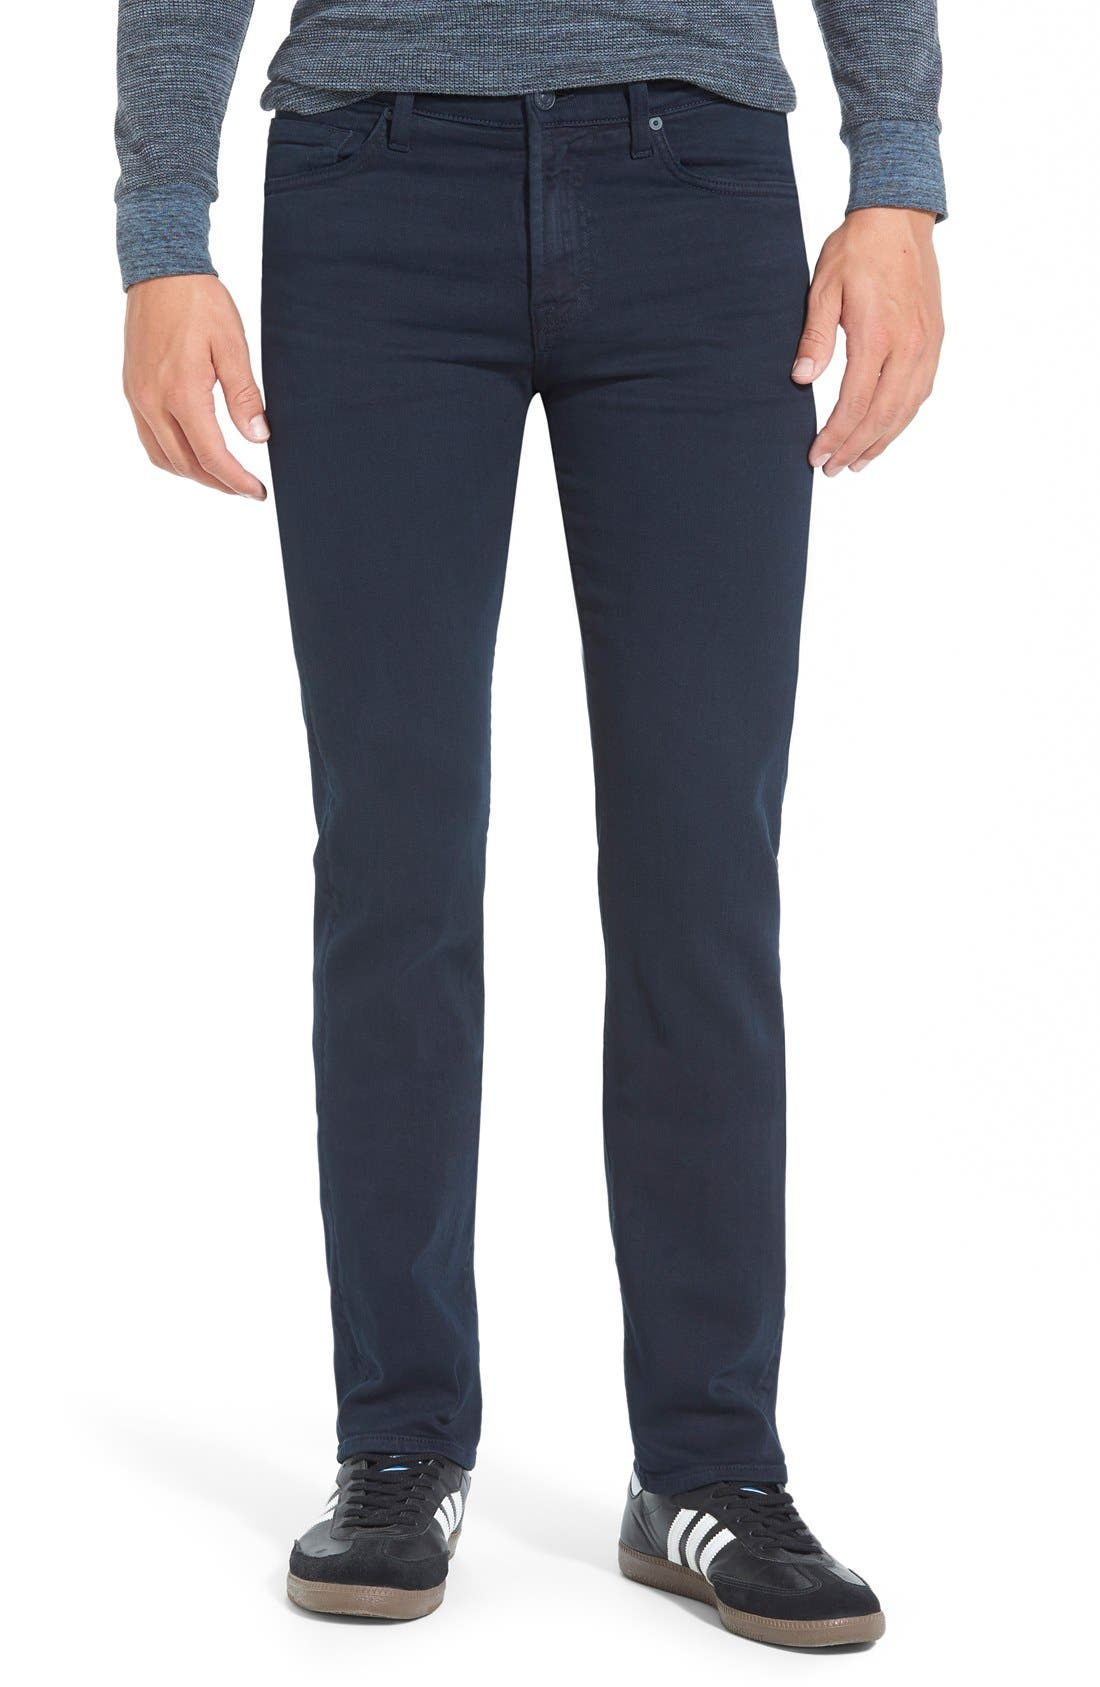 'Slimmy - Luxe Performance' Slim Fit Jeans,                         Main,                         color,